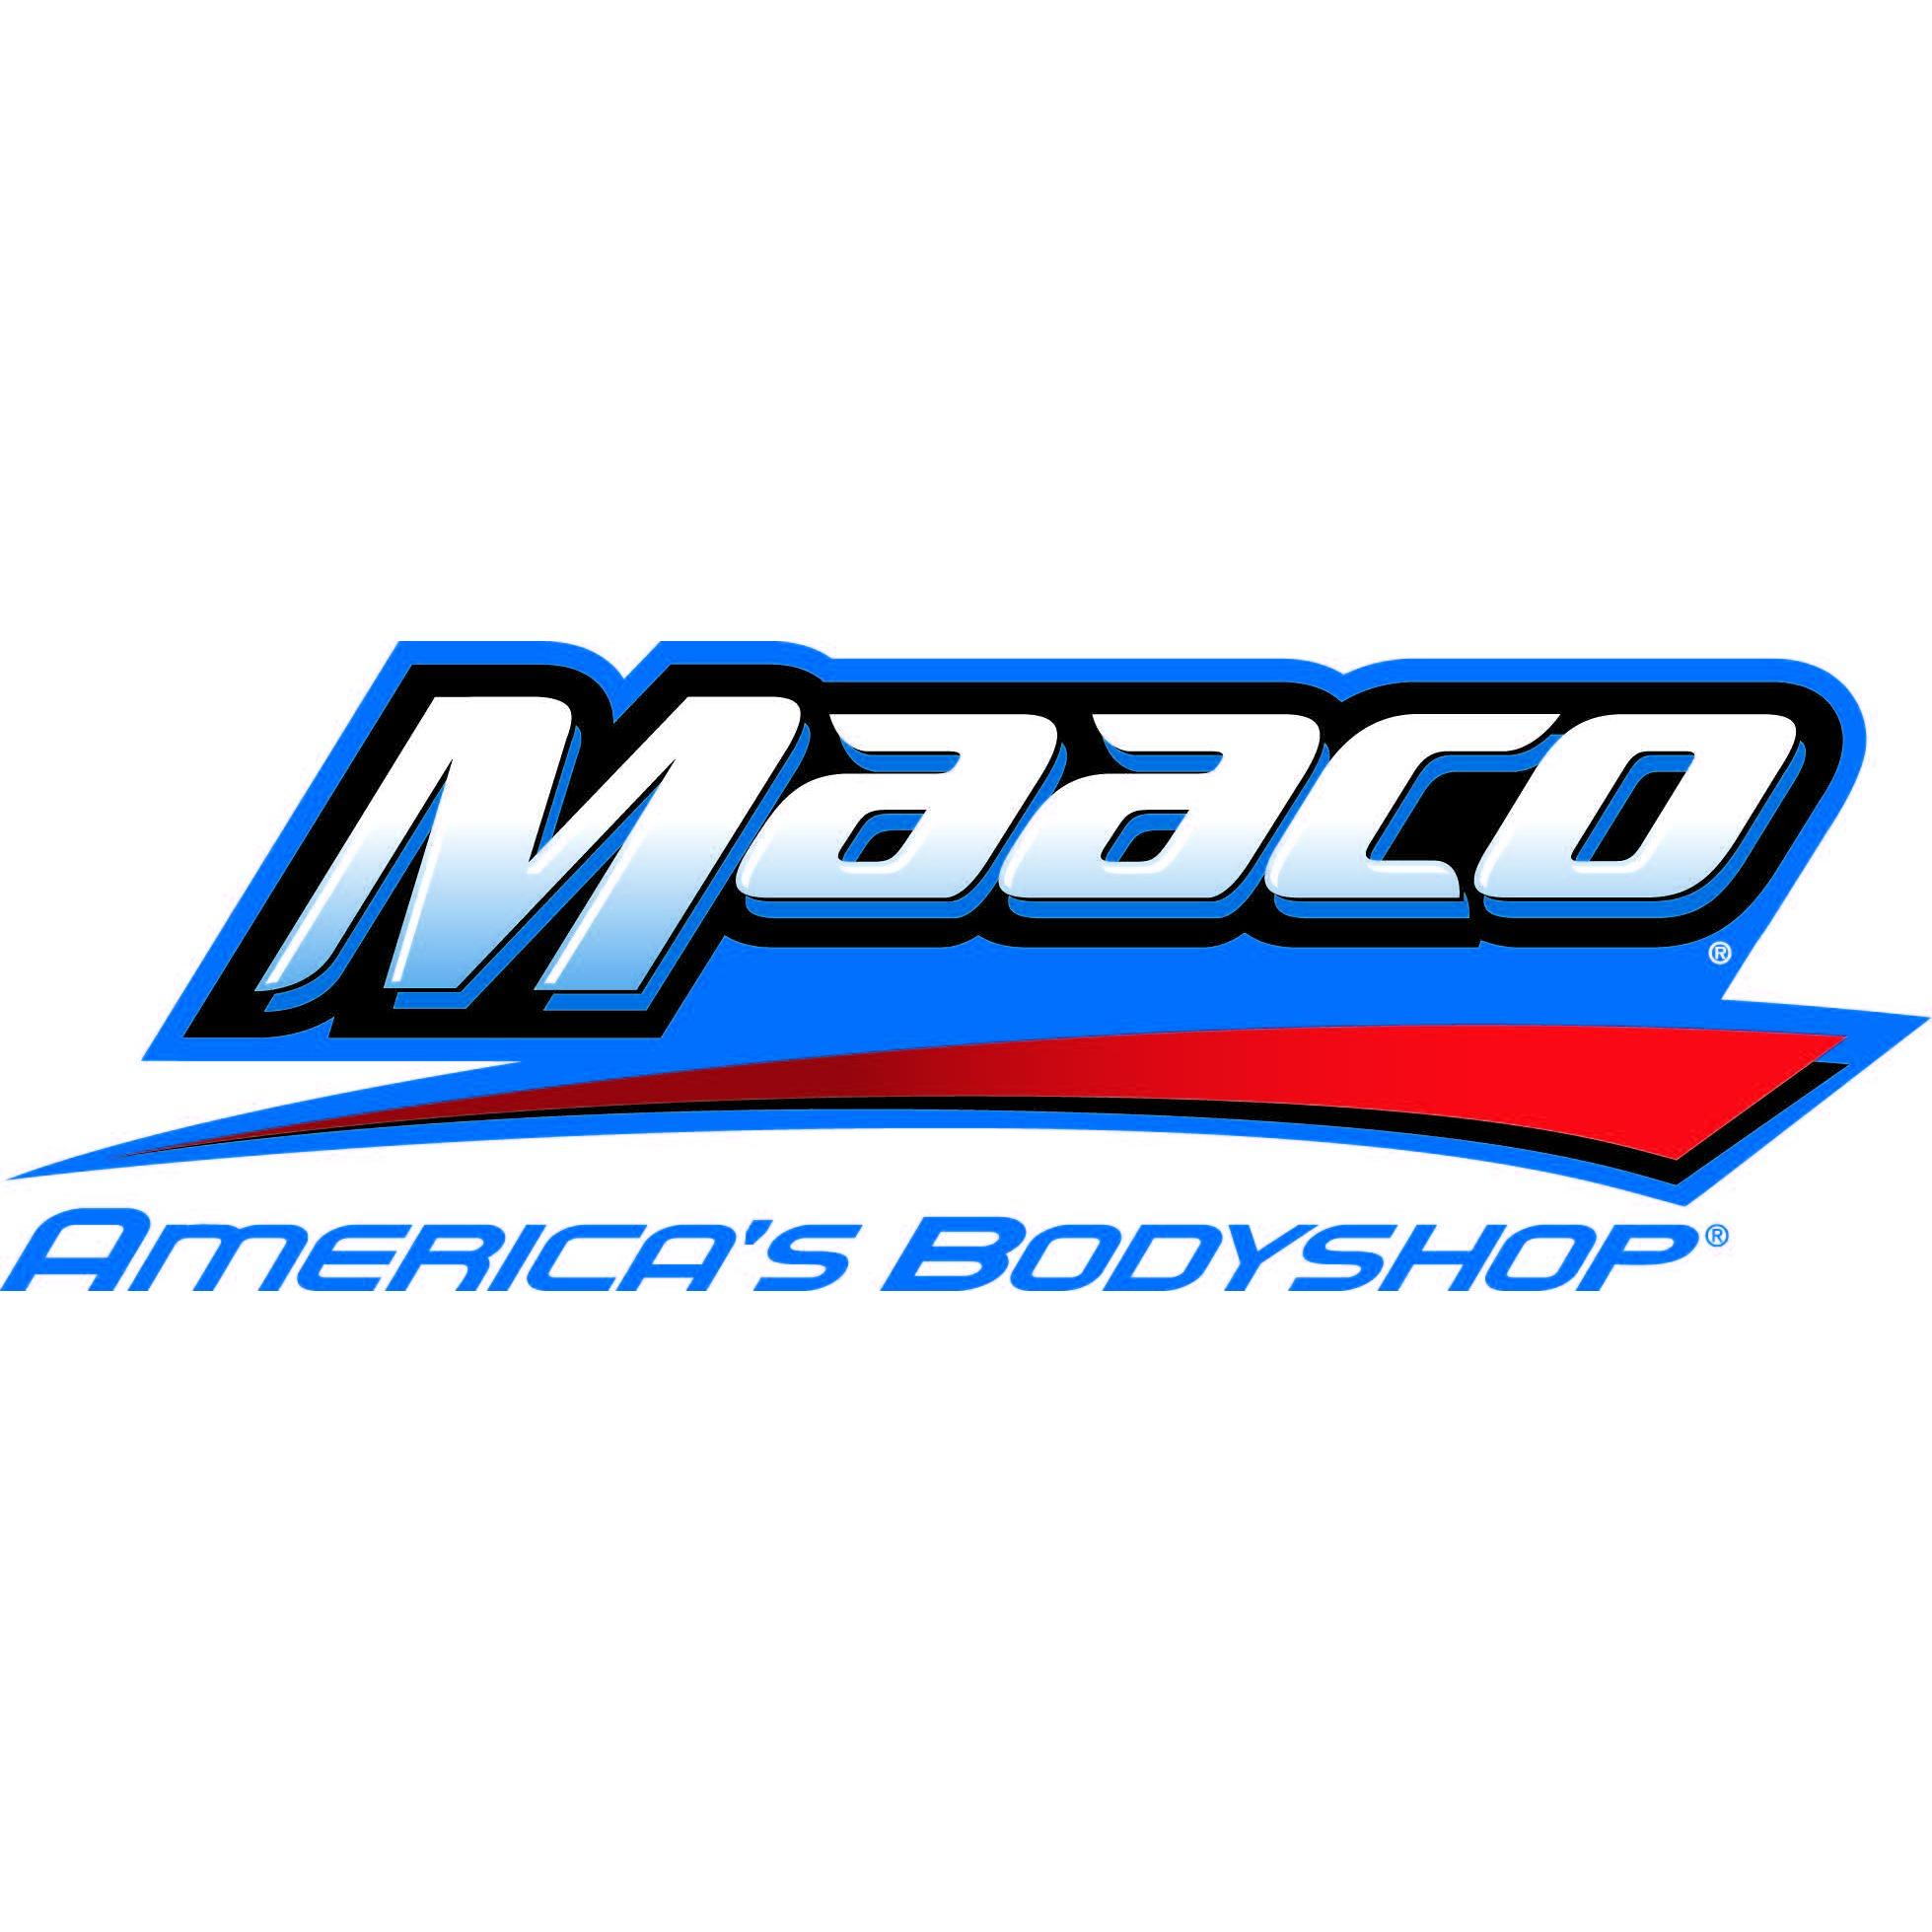 Maaco Collision Repair & Auto Painting - New Berlin, WI - Auto Body Repair & Painting